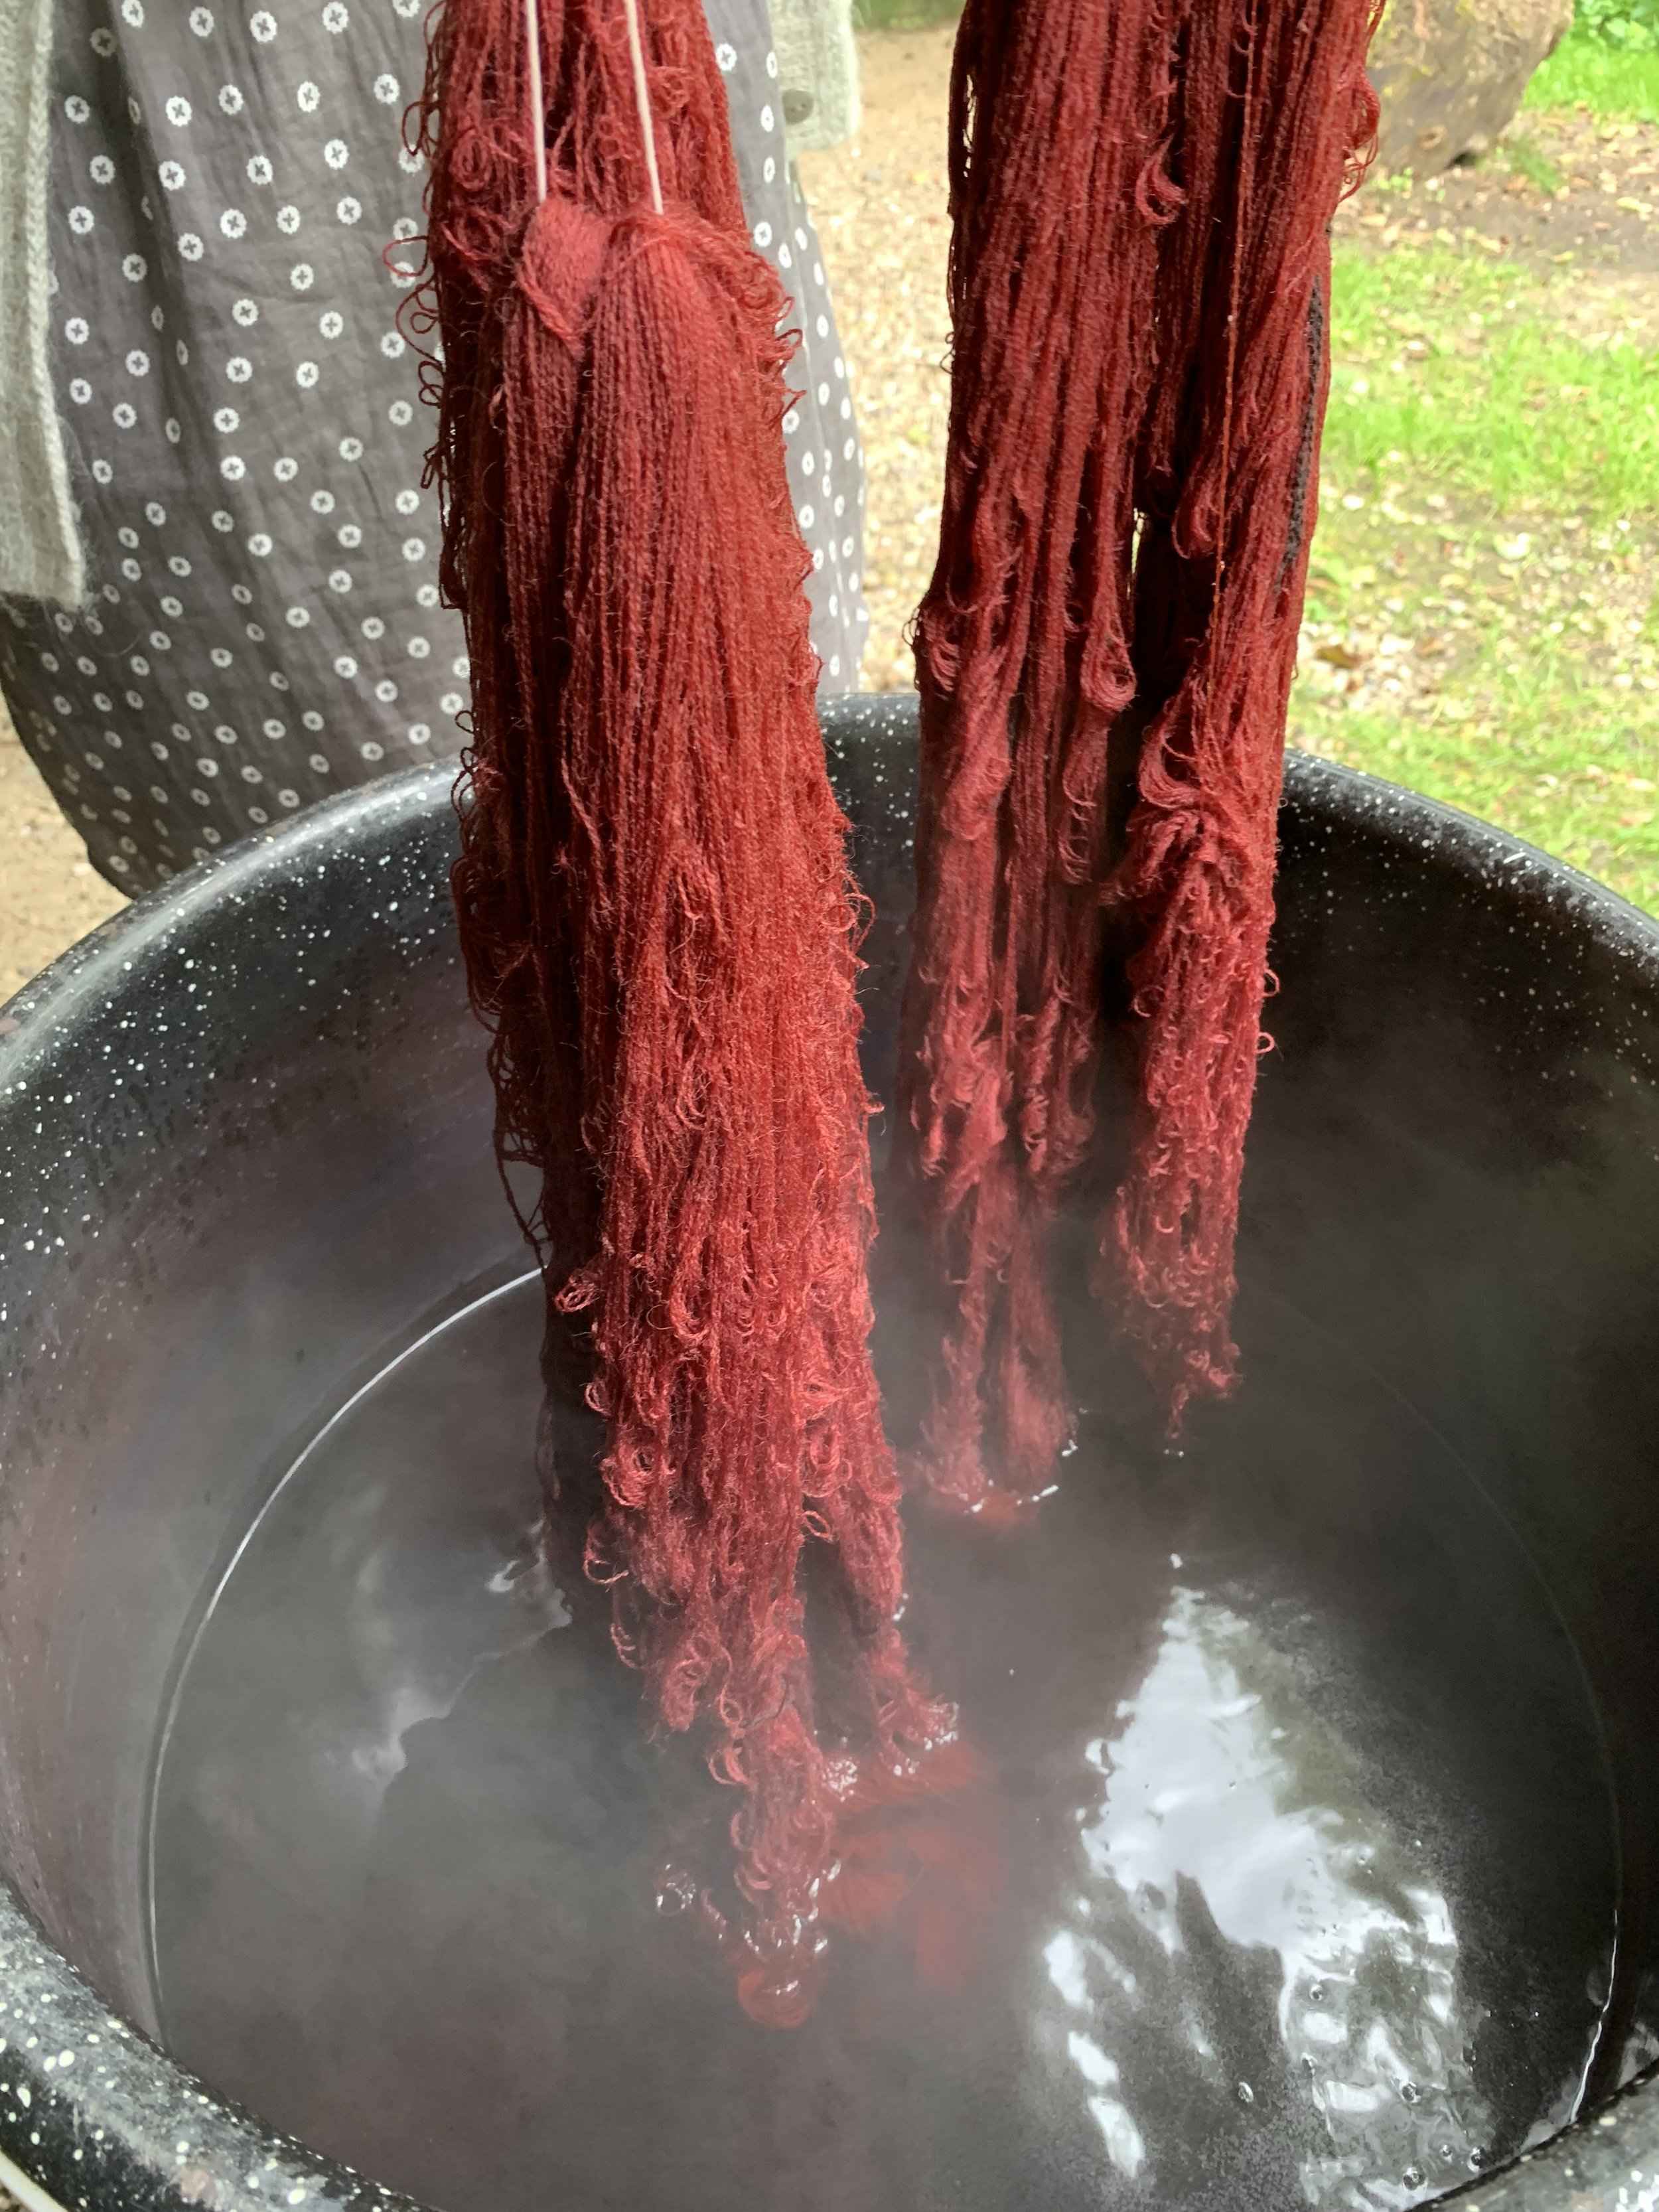 After an hour in the dye pot at 80C the skeins are ready to be hung to dry. Just look at that beautiful colour!